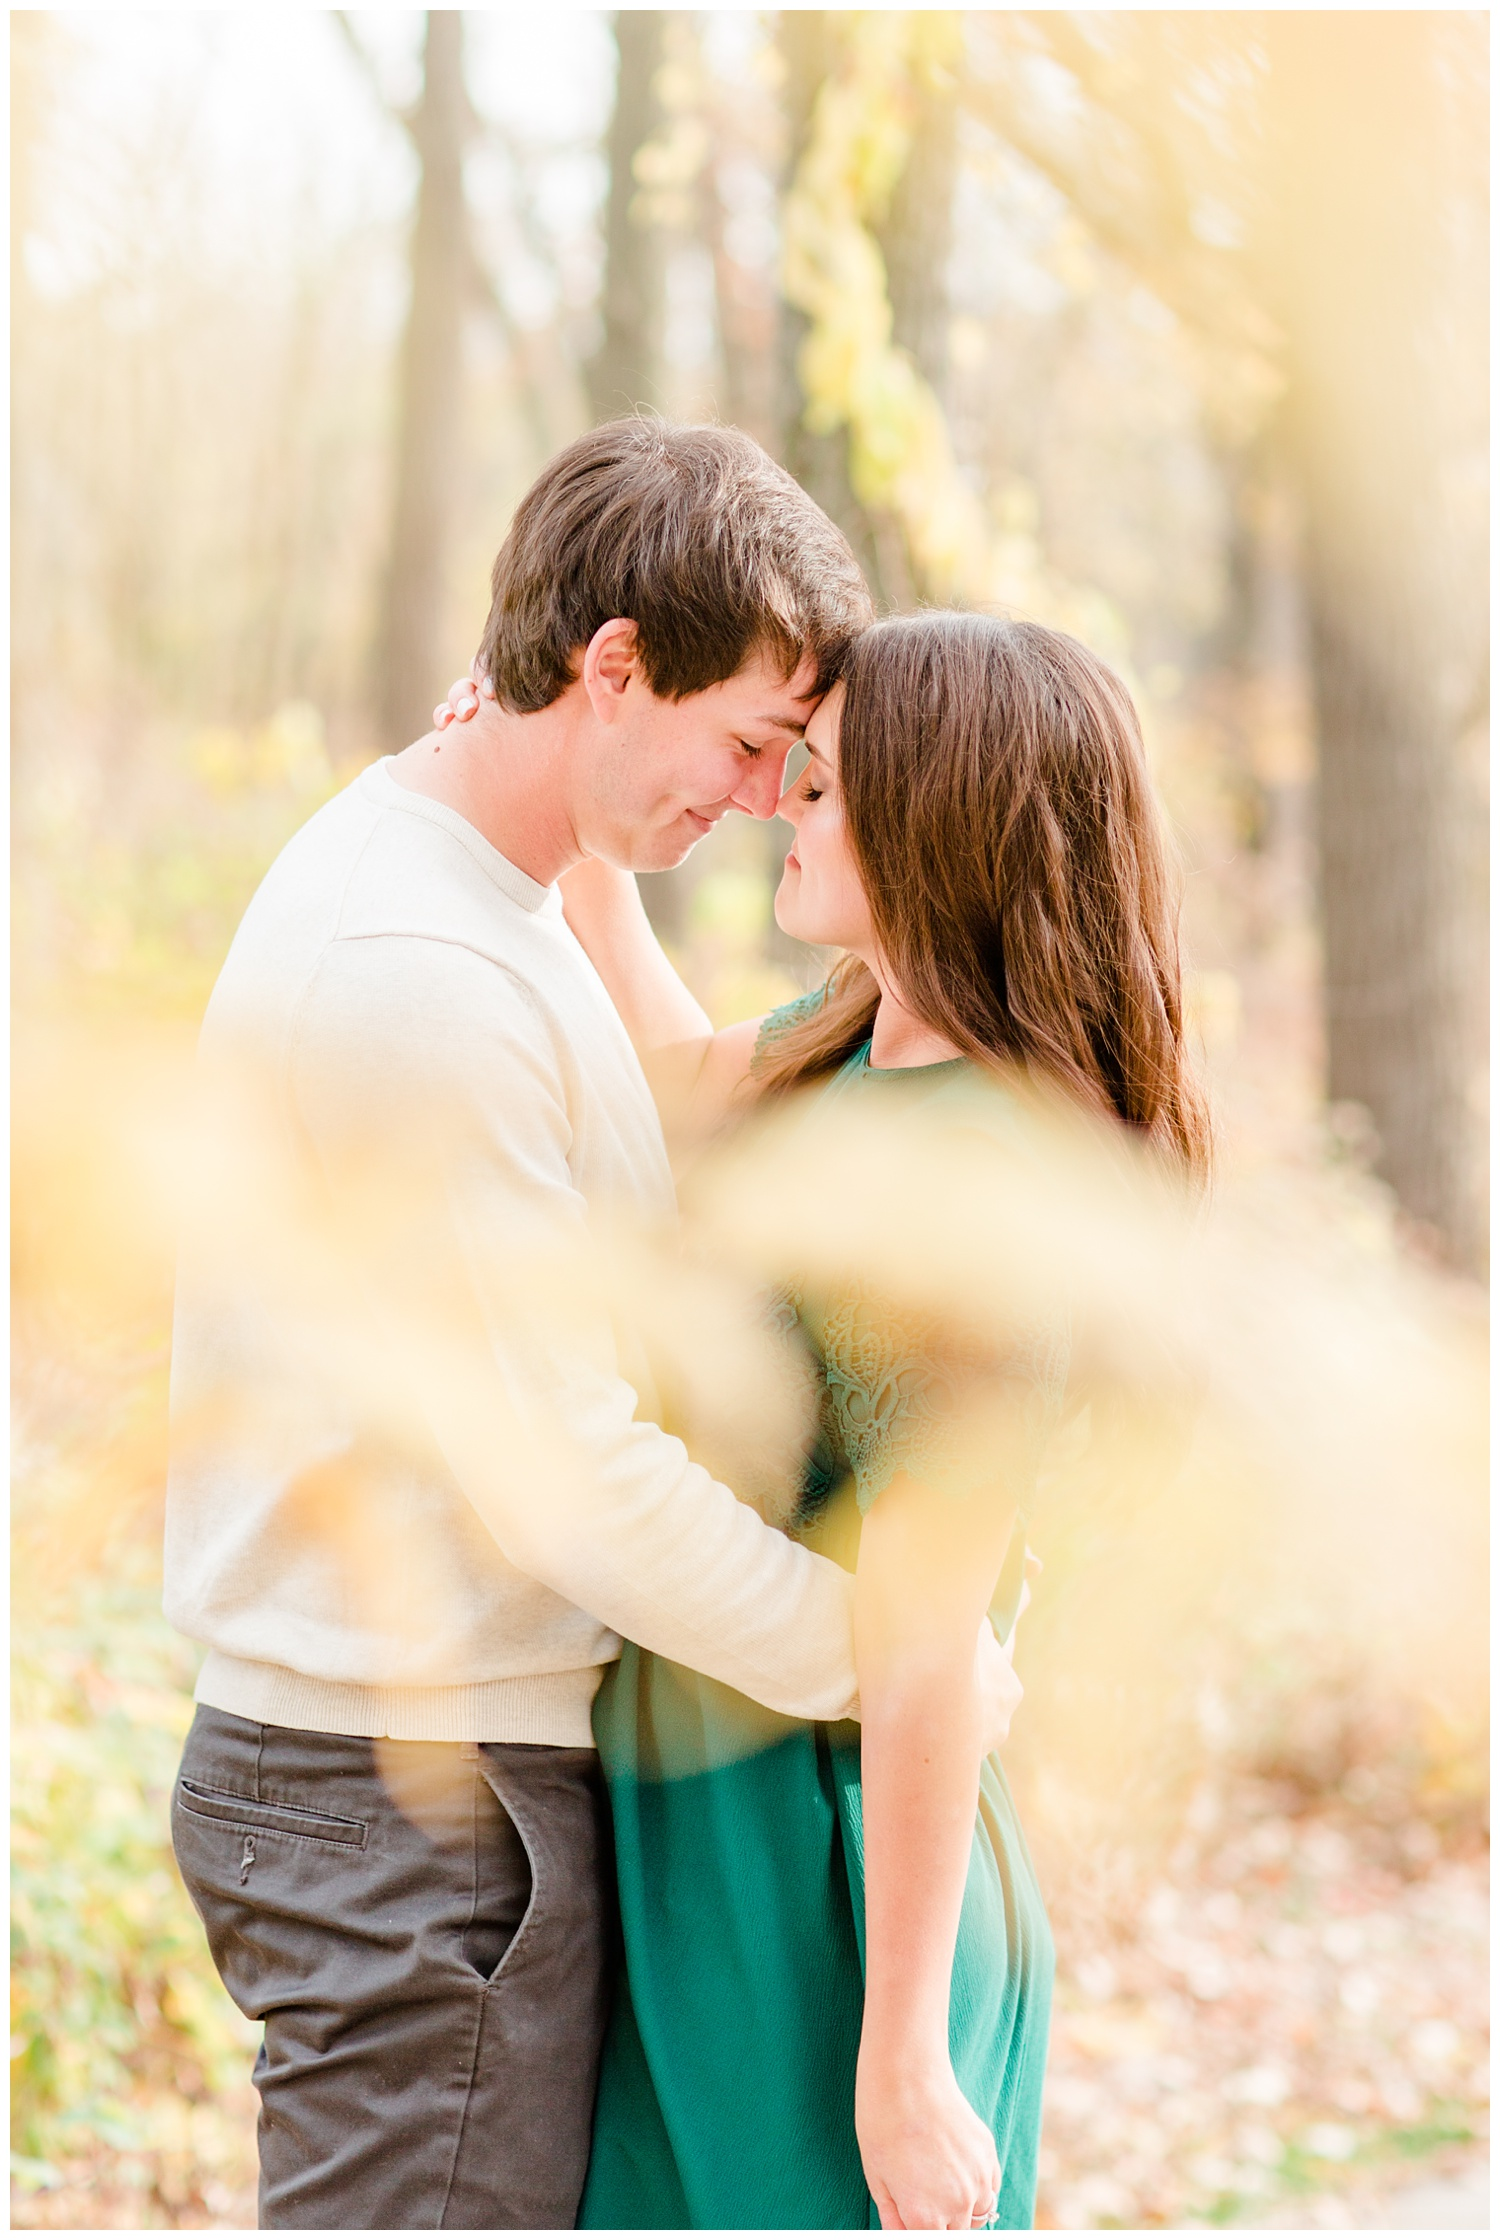 Fall in Iowa, Jenna wearing an emerald green dress embraces Brady in the middle of an autumn path at Lost Island Nature Center | CB Studio